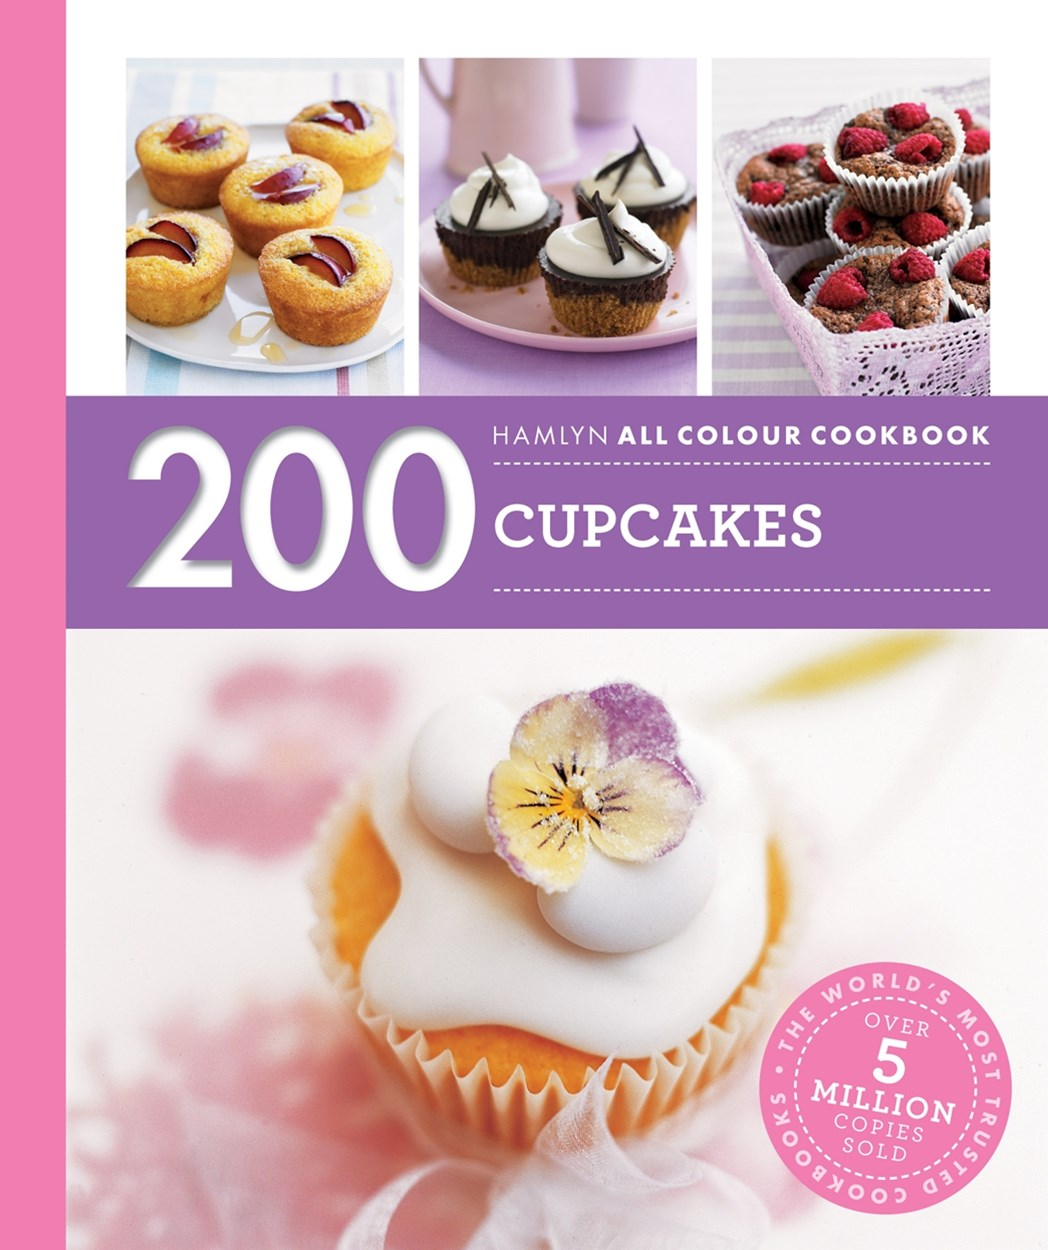 Hamlyn All Colour Cookery: 200 Cupcakes